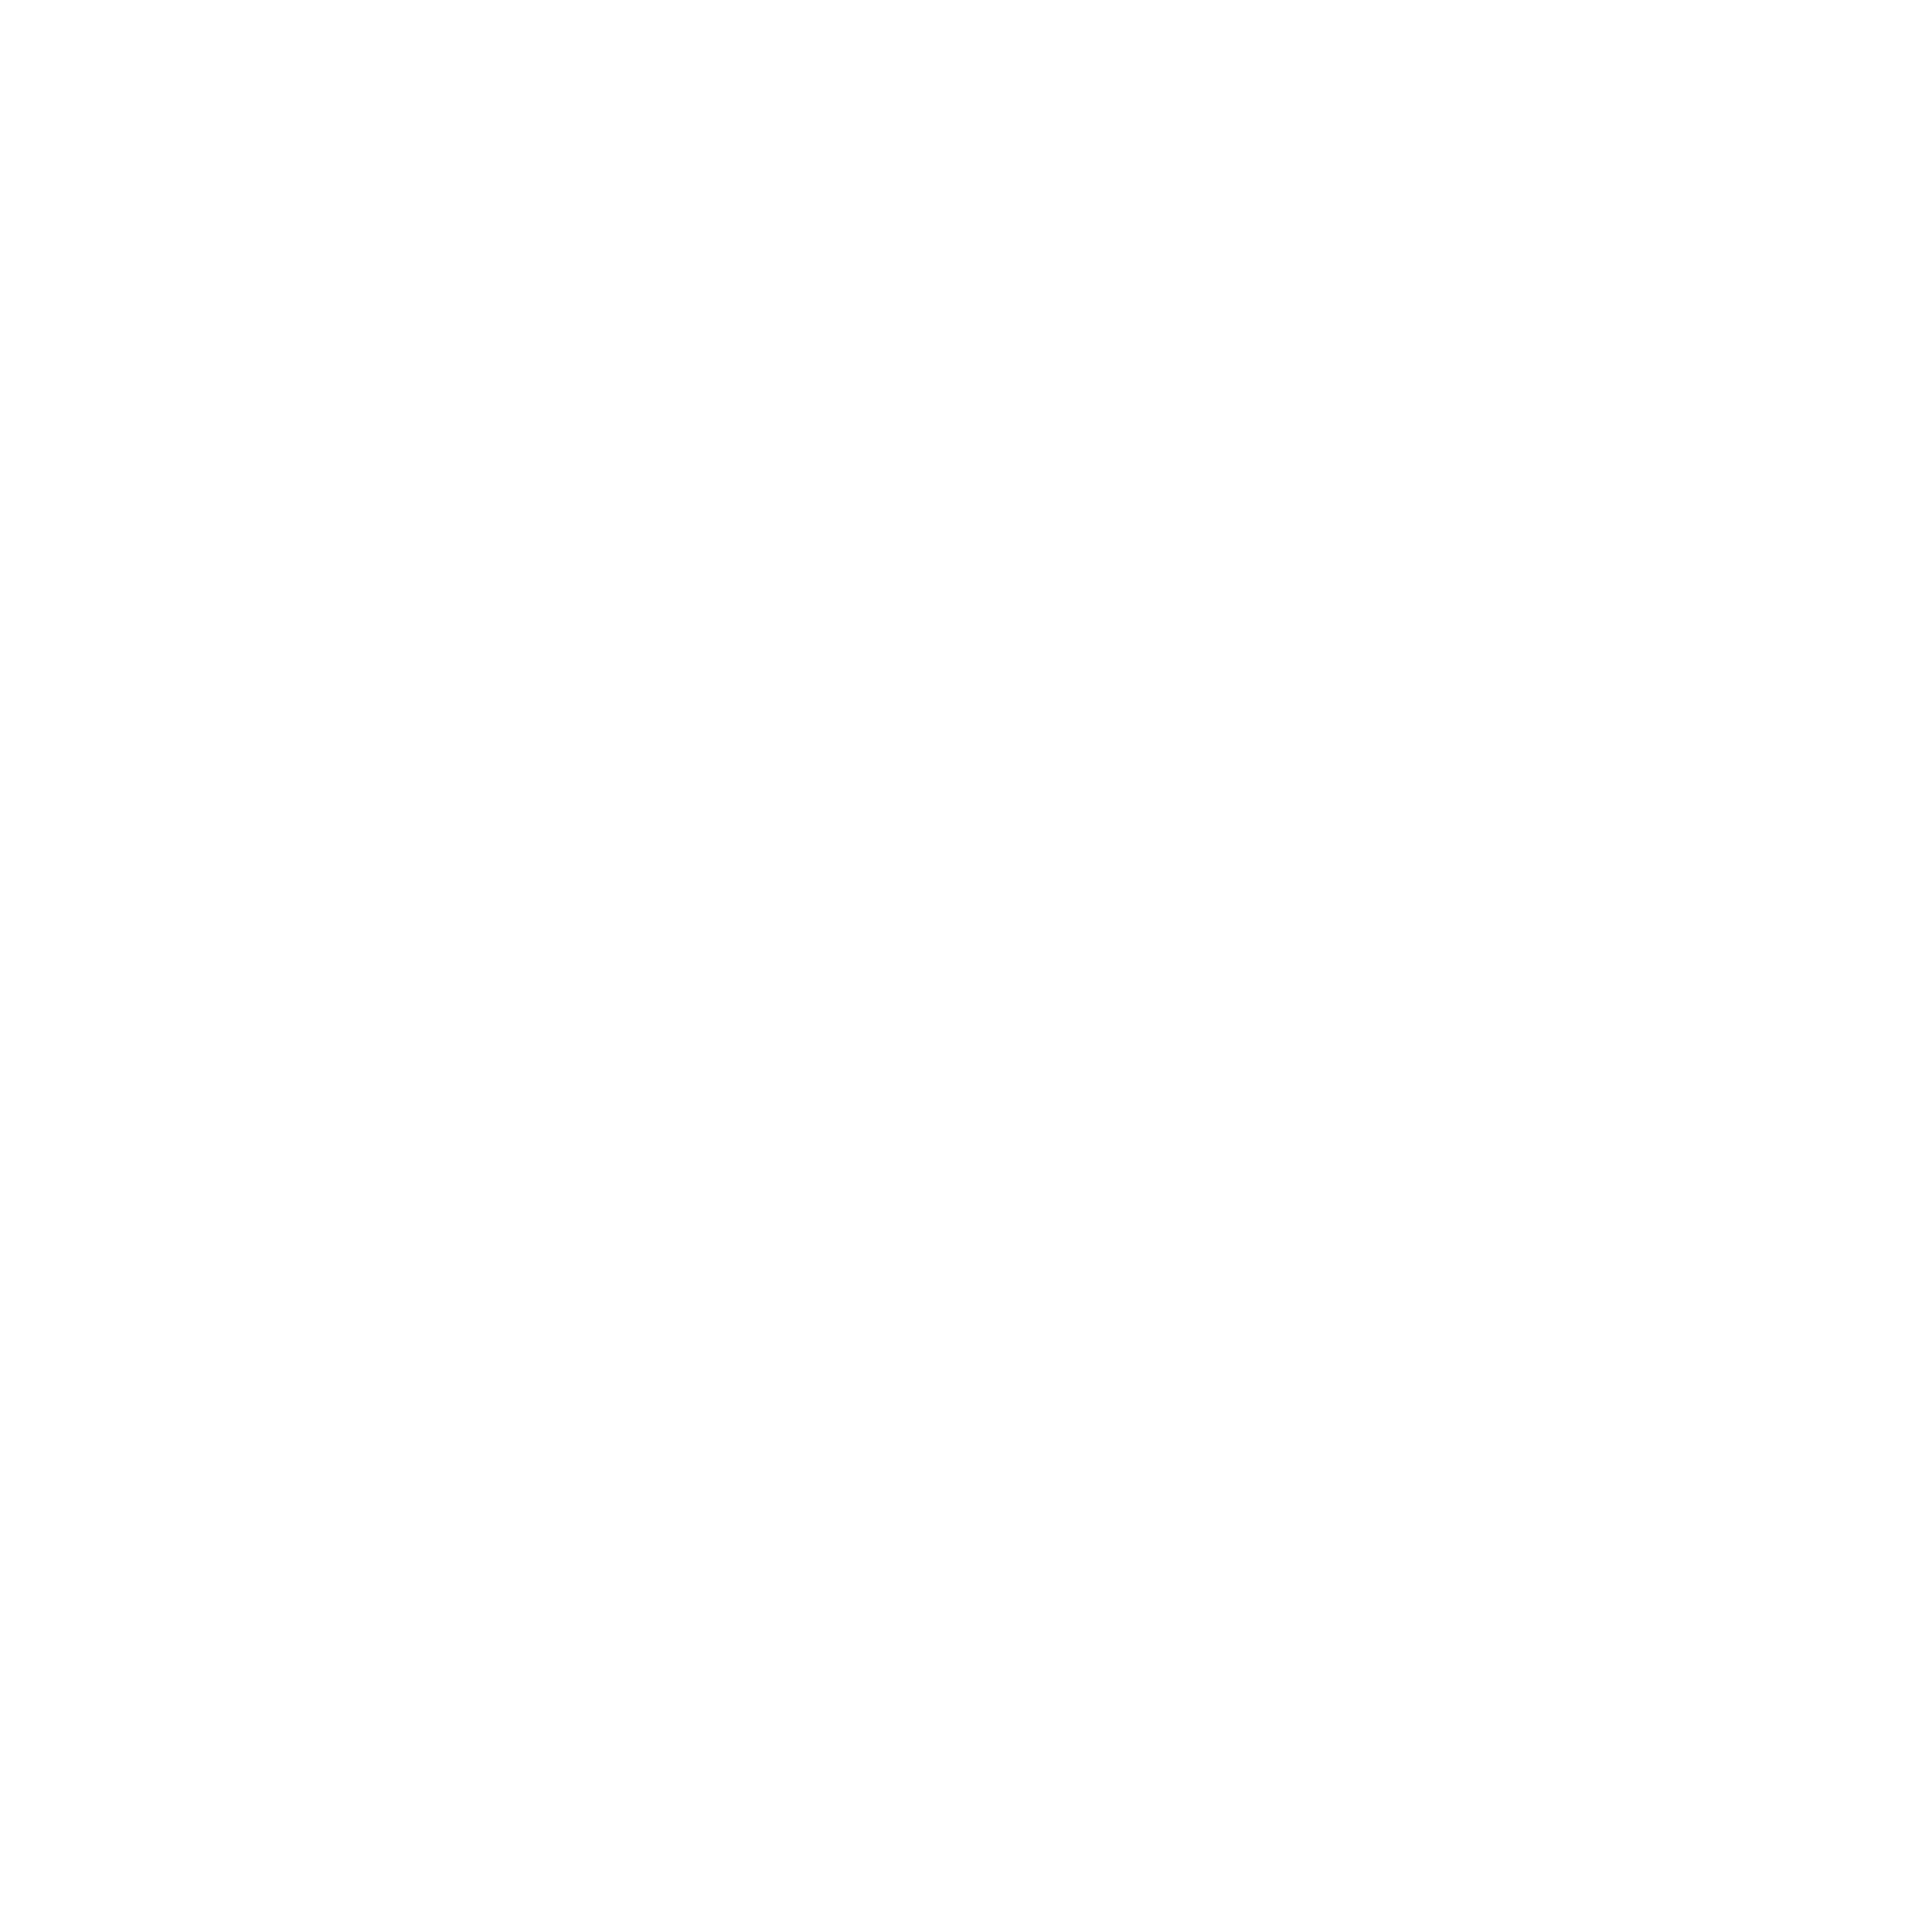 Eqyual Housing Opportunity